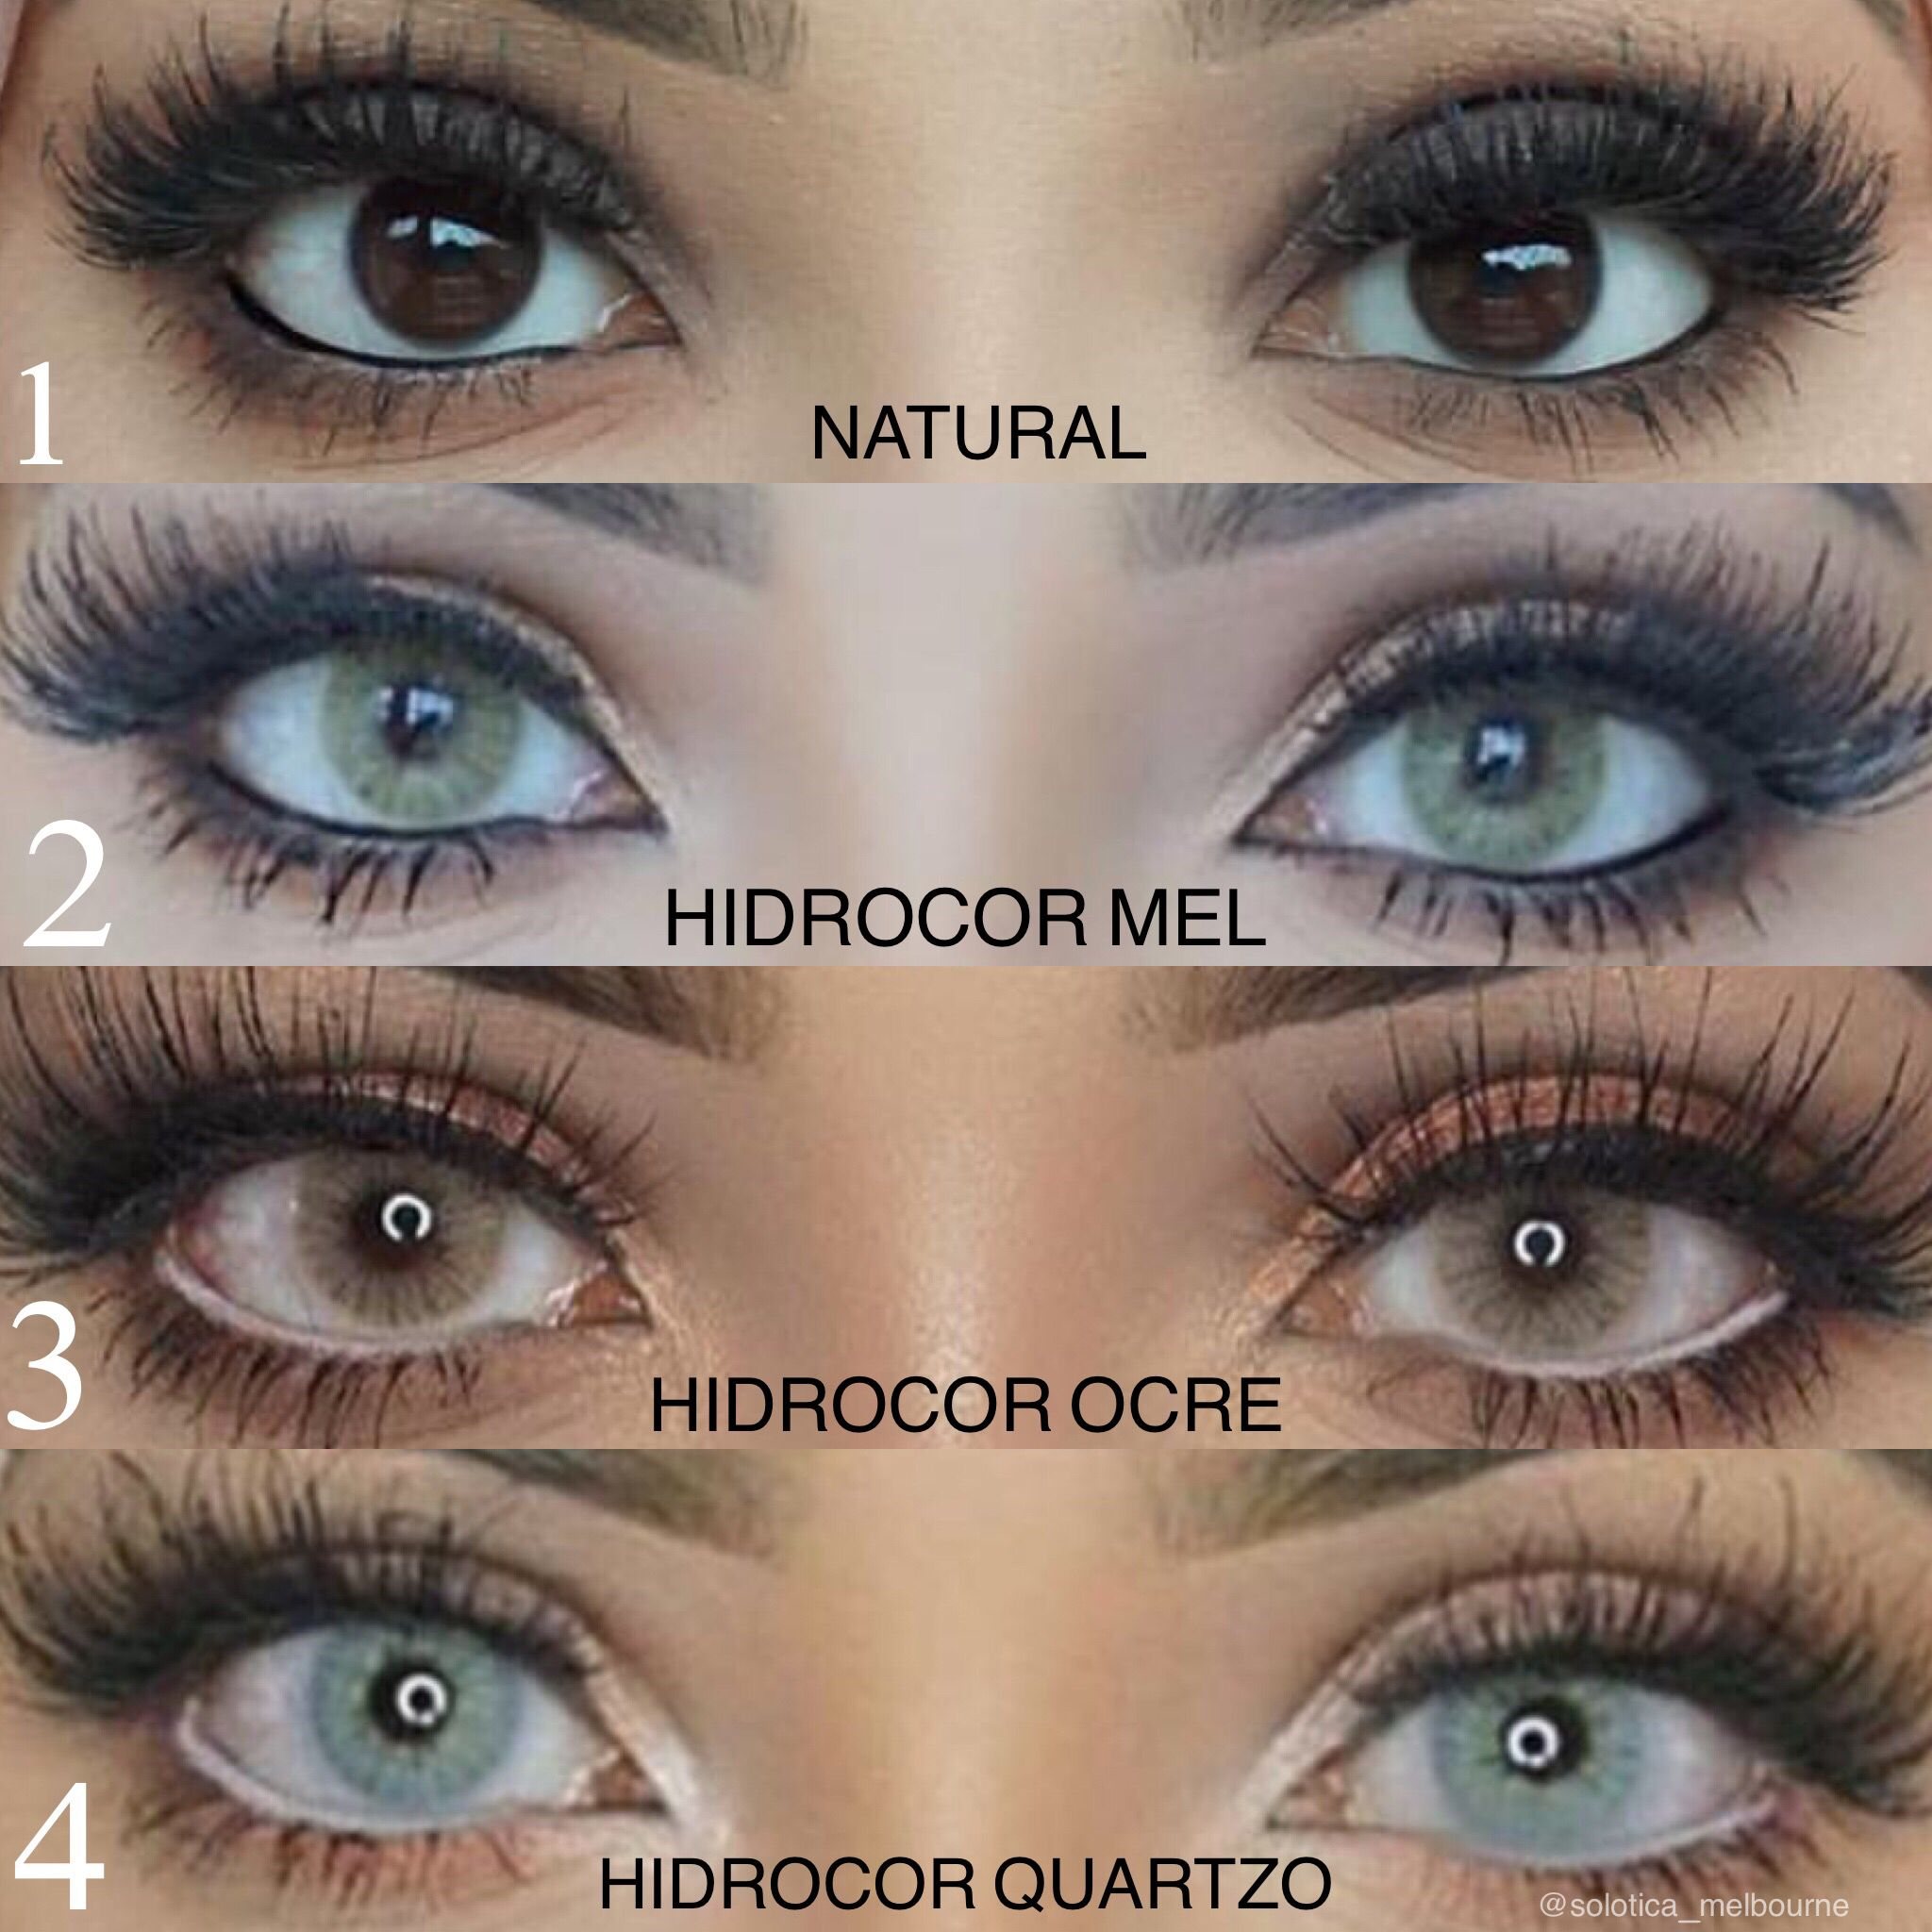 Hidrocor Lenses #coloredeyecontacts